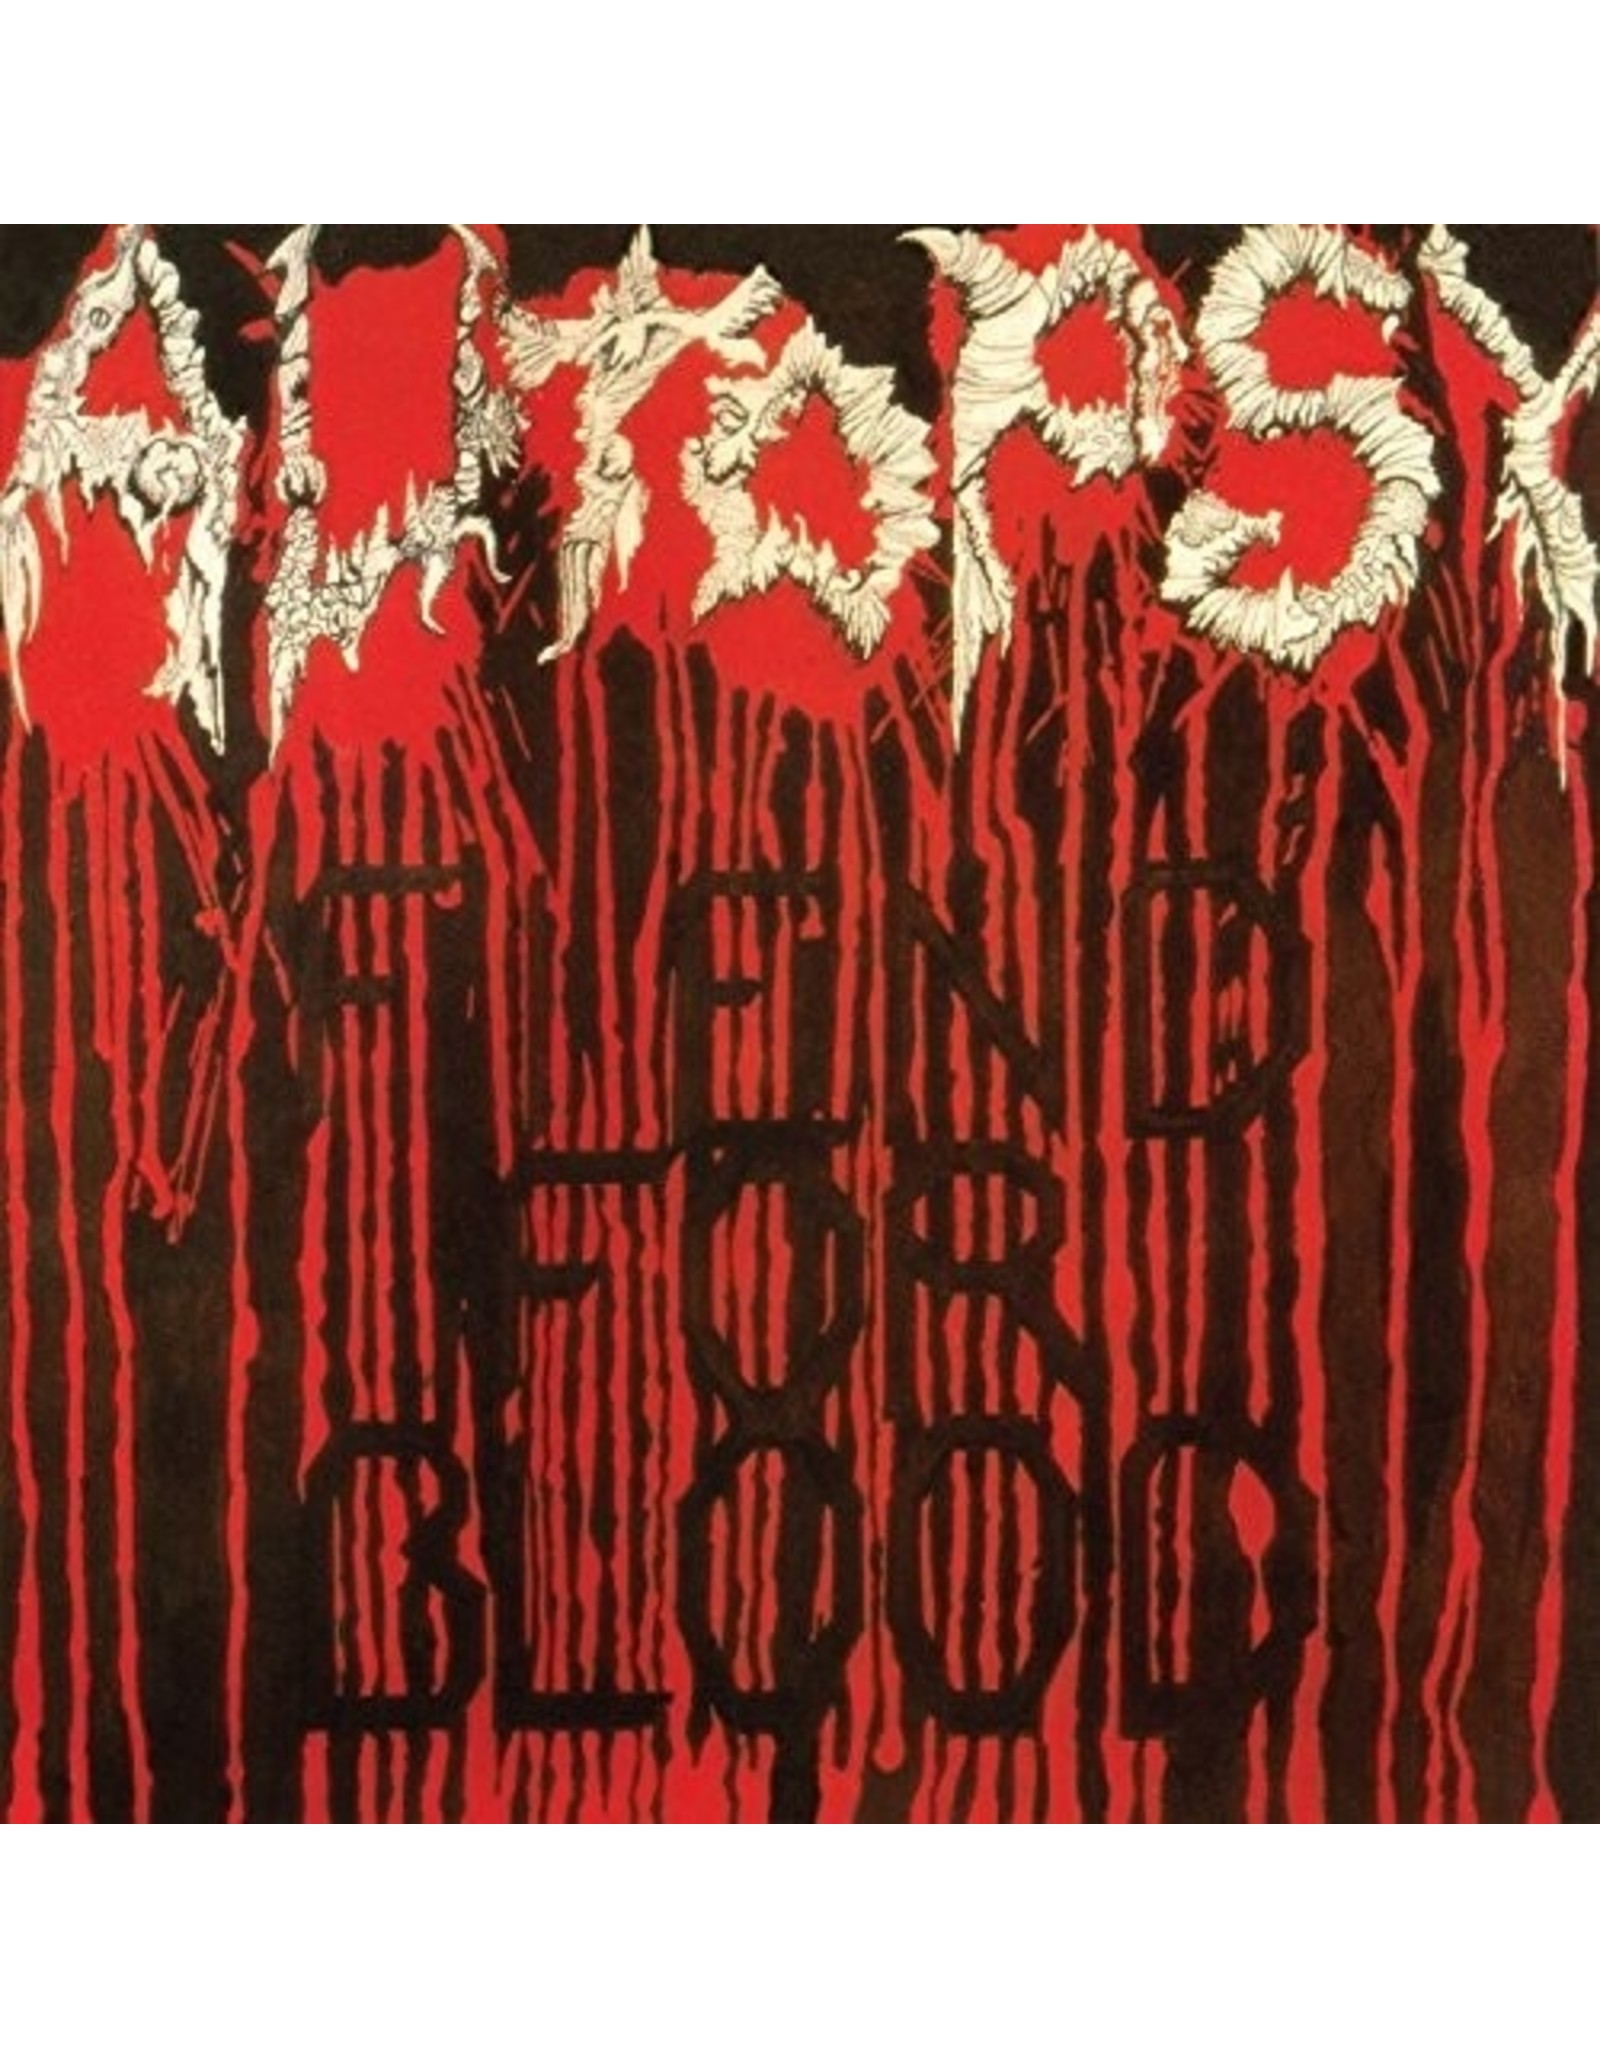 New Vinyl Autopsy - Fiend For Blood LP